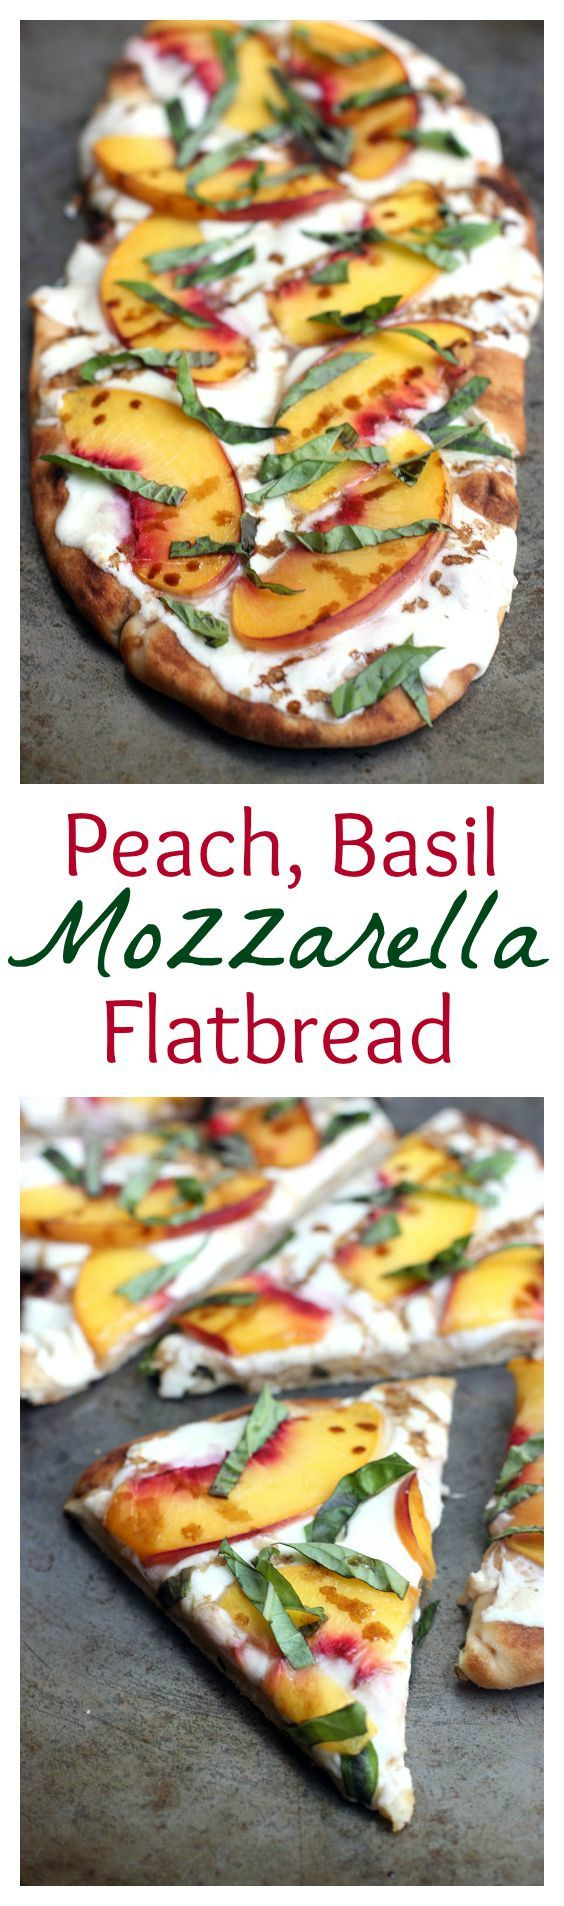 Peach, Basil, Mozzarella Flatbread with balsamic reduction. Recipe on ...